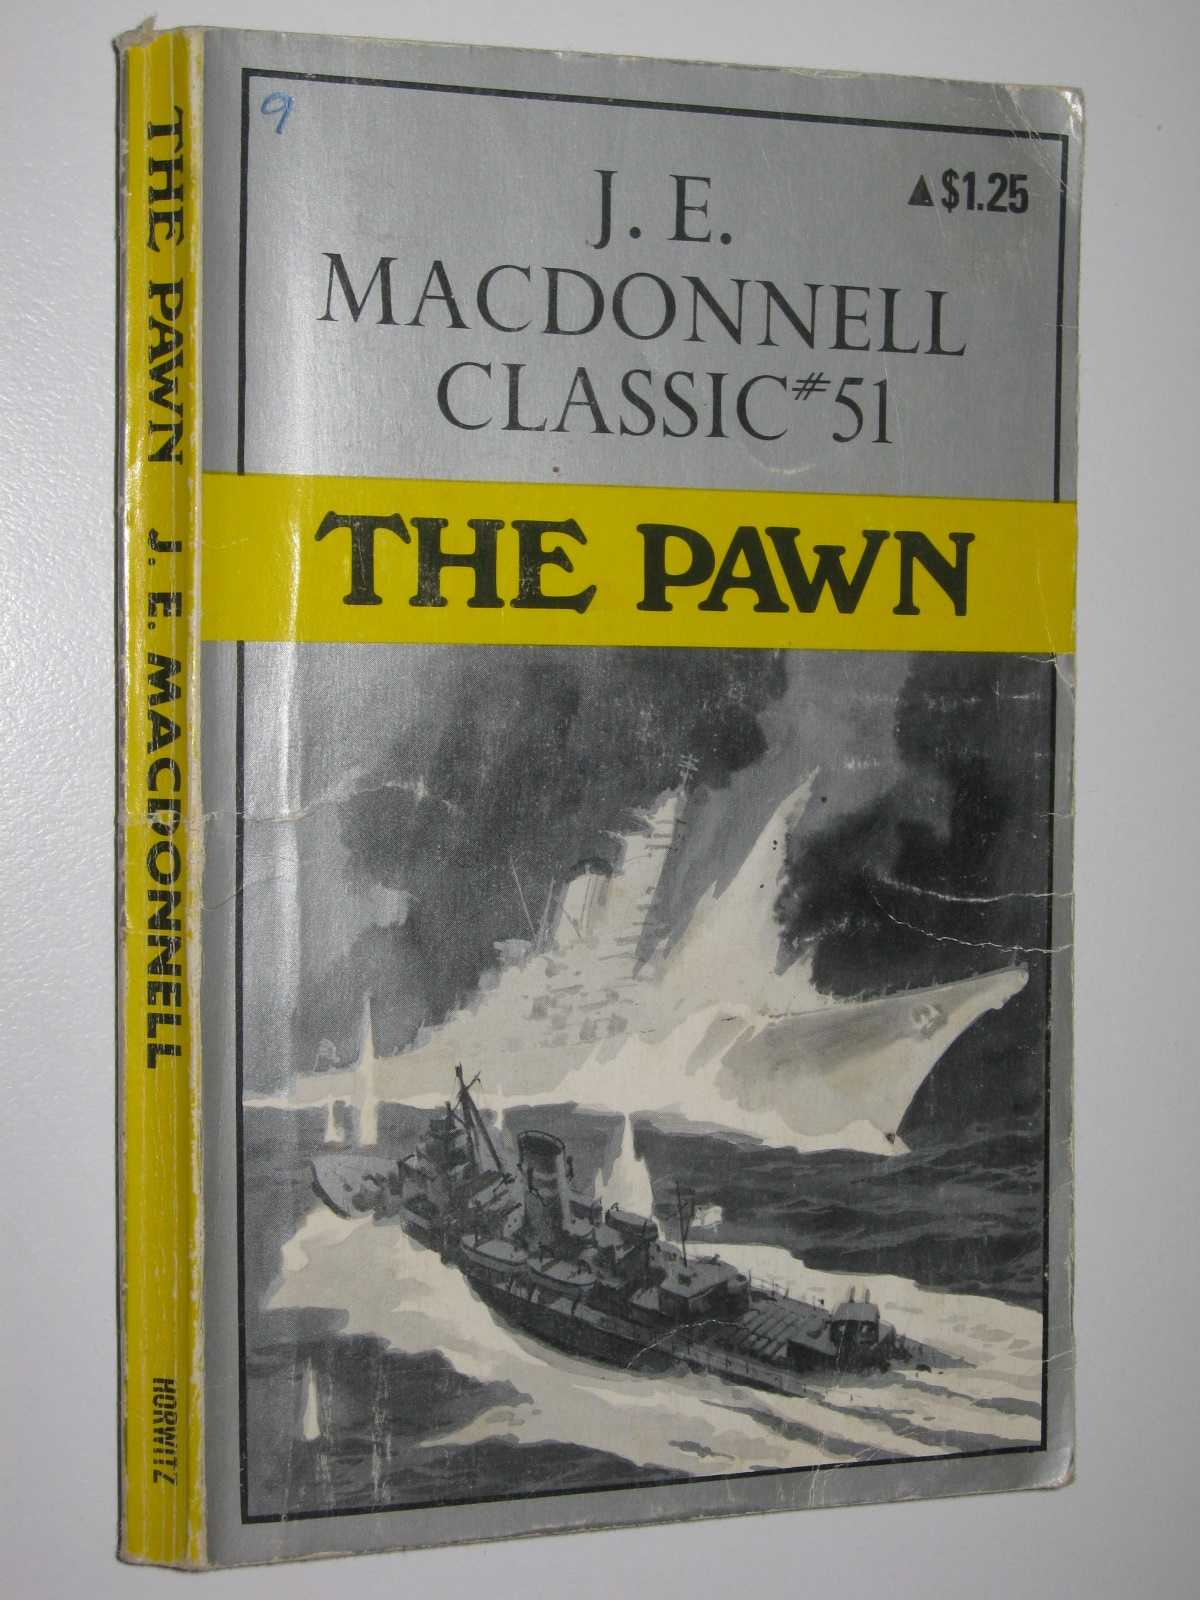 The Pawn - Classic Series #51, Macdonnell, J. E.